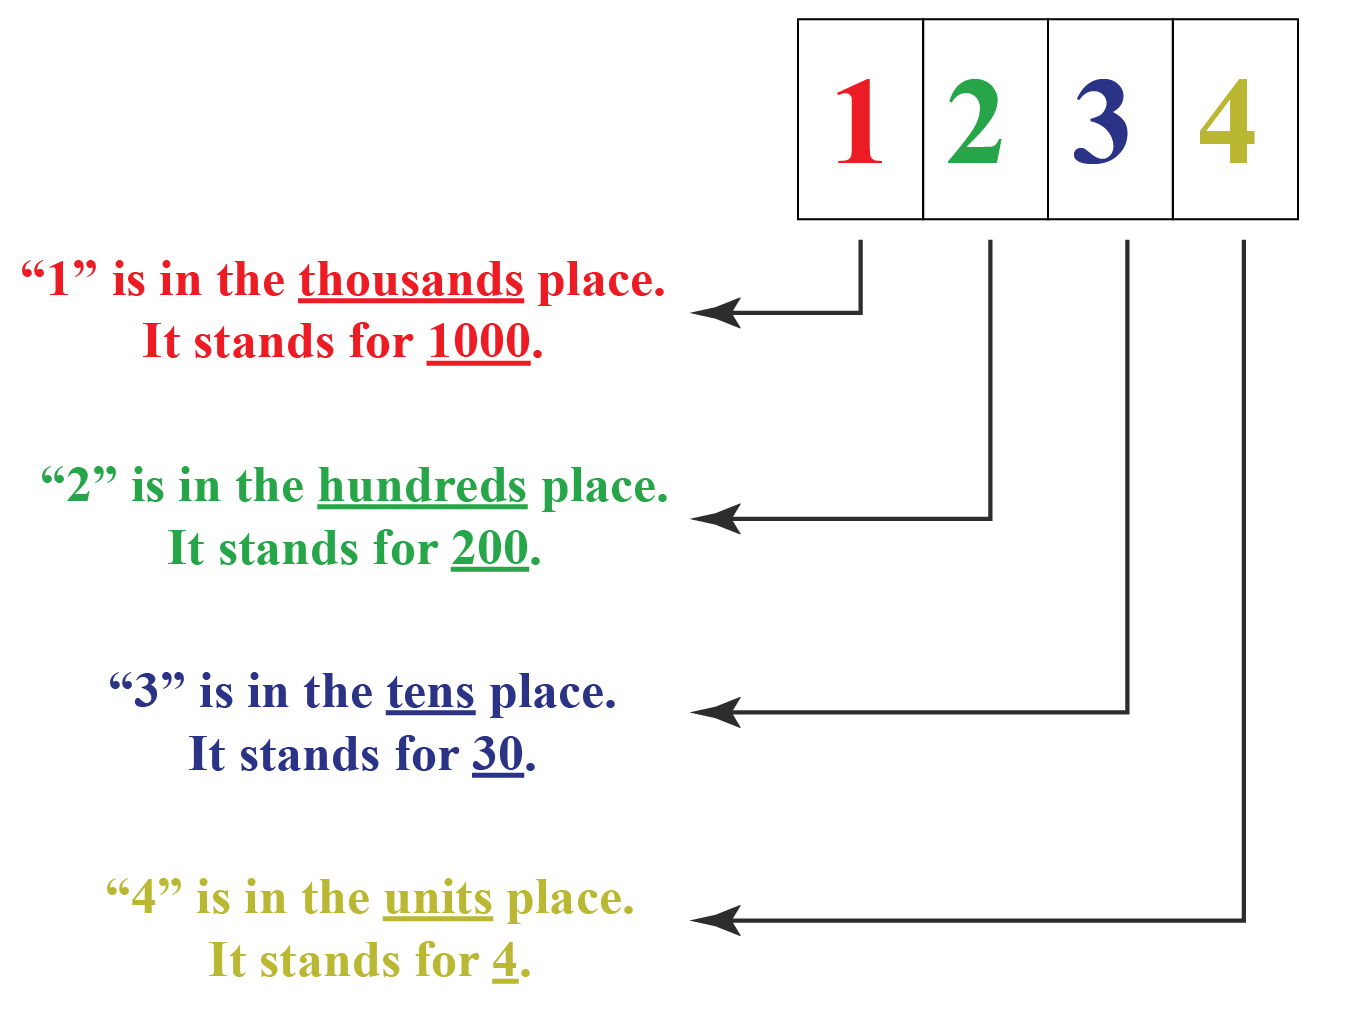 place value expansion of a 4 digit number 1234